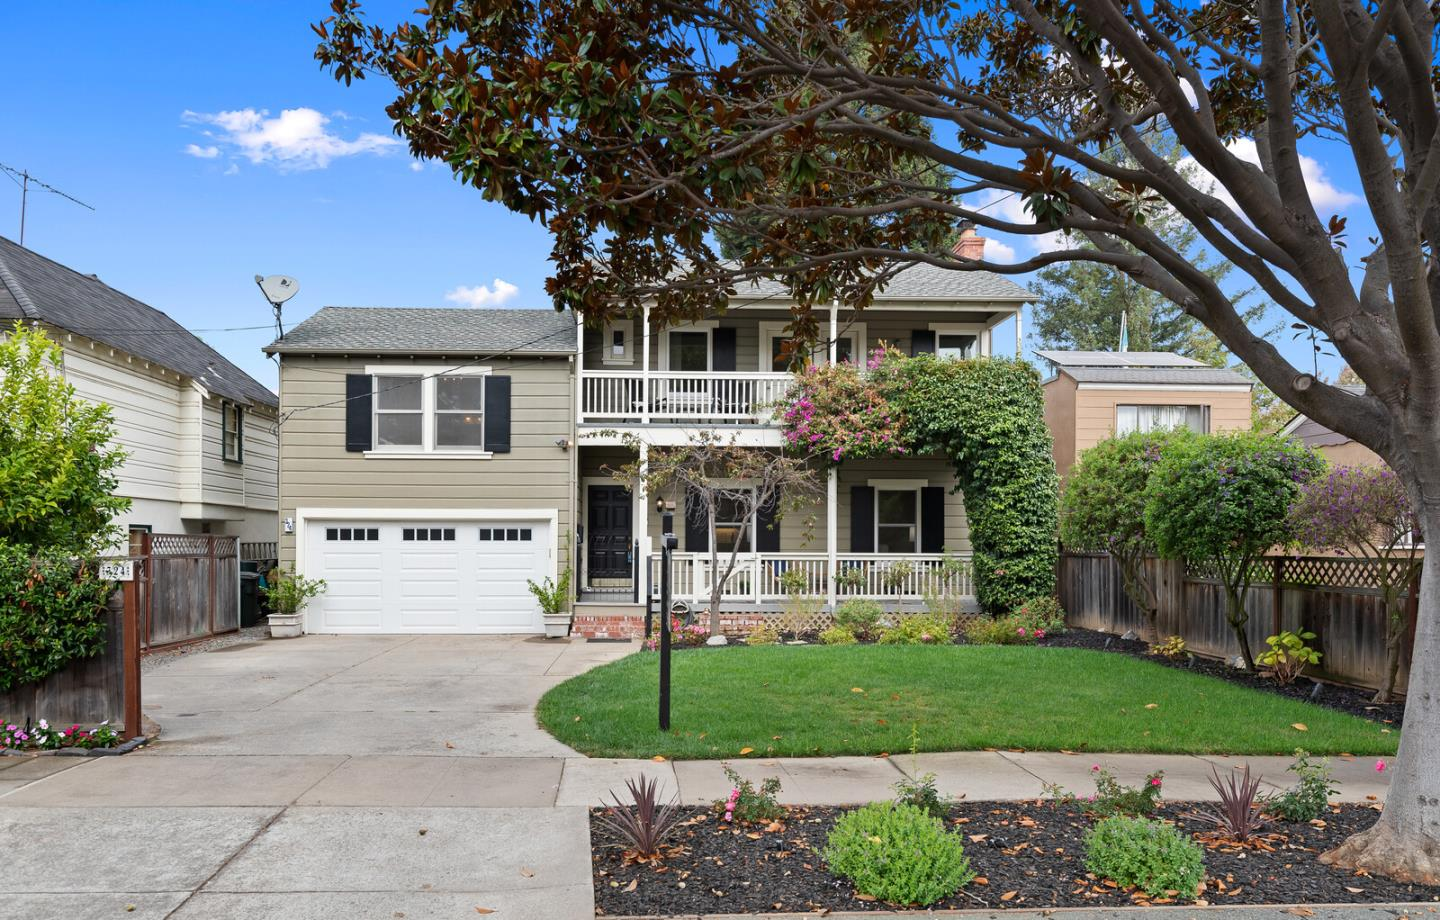 "Charming detail and beautiful remodeling combine in this gorgeous Colonial-style home on a tree-lined street in Burlingame's favored ""Burlingables"" neighborhood. Just a short distance away from downtown Burlingame and the soon-to-be reimagined Burlingame Rec Center, this home boasts 3BR/2.5BA plus office. Entry opens to living room featuring hardwood flooring, barreled ceiling, & wood-burning fireplace. Beyond is an open family room with vaulted ceiling opening to a beautifully remodeled kitchen featuring center island, breakfast bar, and adjacent laundry rm. Half bath off the family room. Easy access to large, tranquil rear patio is provided through the laundry room. Upstairs features a large master with vaulted ceiling, loads of light streaming in through large windows, master bath with dual sinks and shower over tub. The two additional bedrooms share a hall bath, and both have access to balcony. Additional office room could be used as an optional 4th BR"